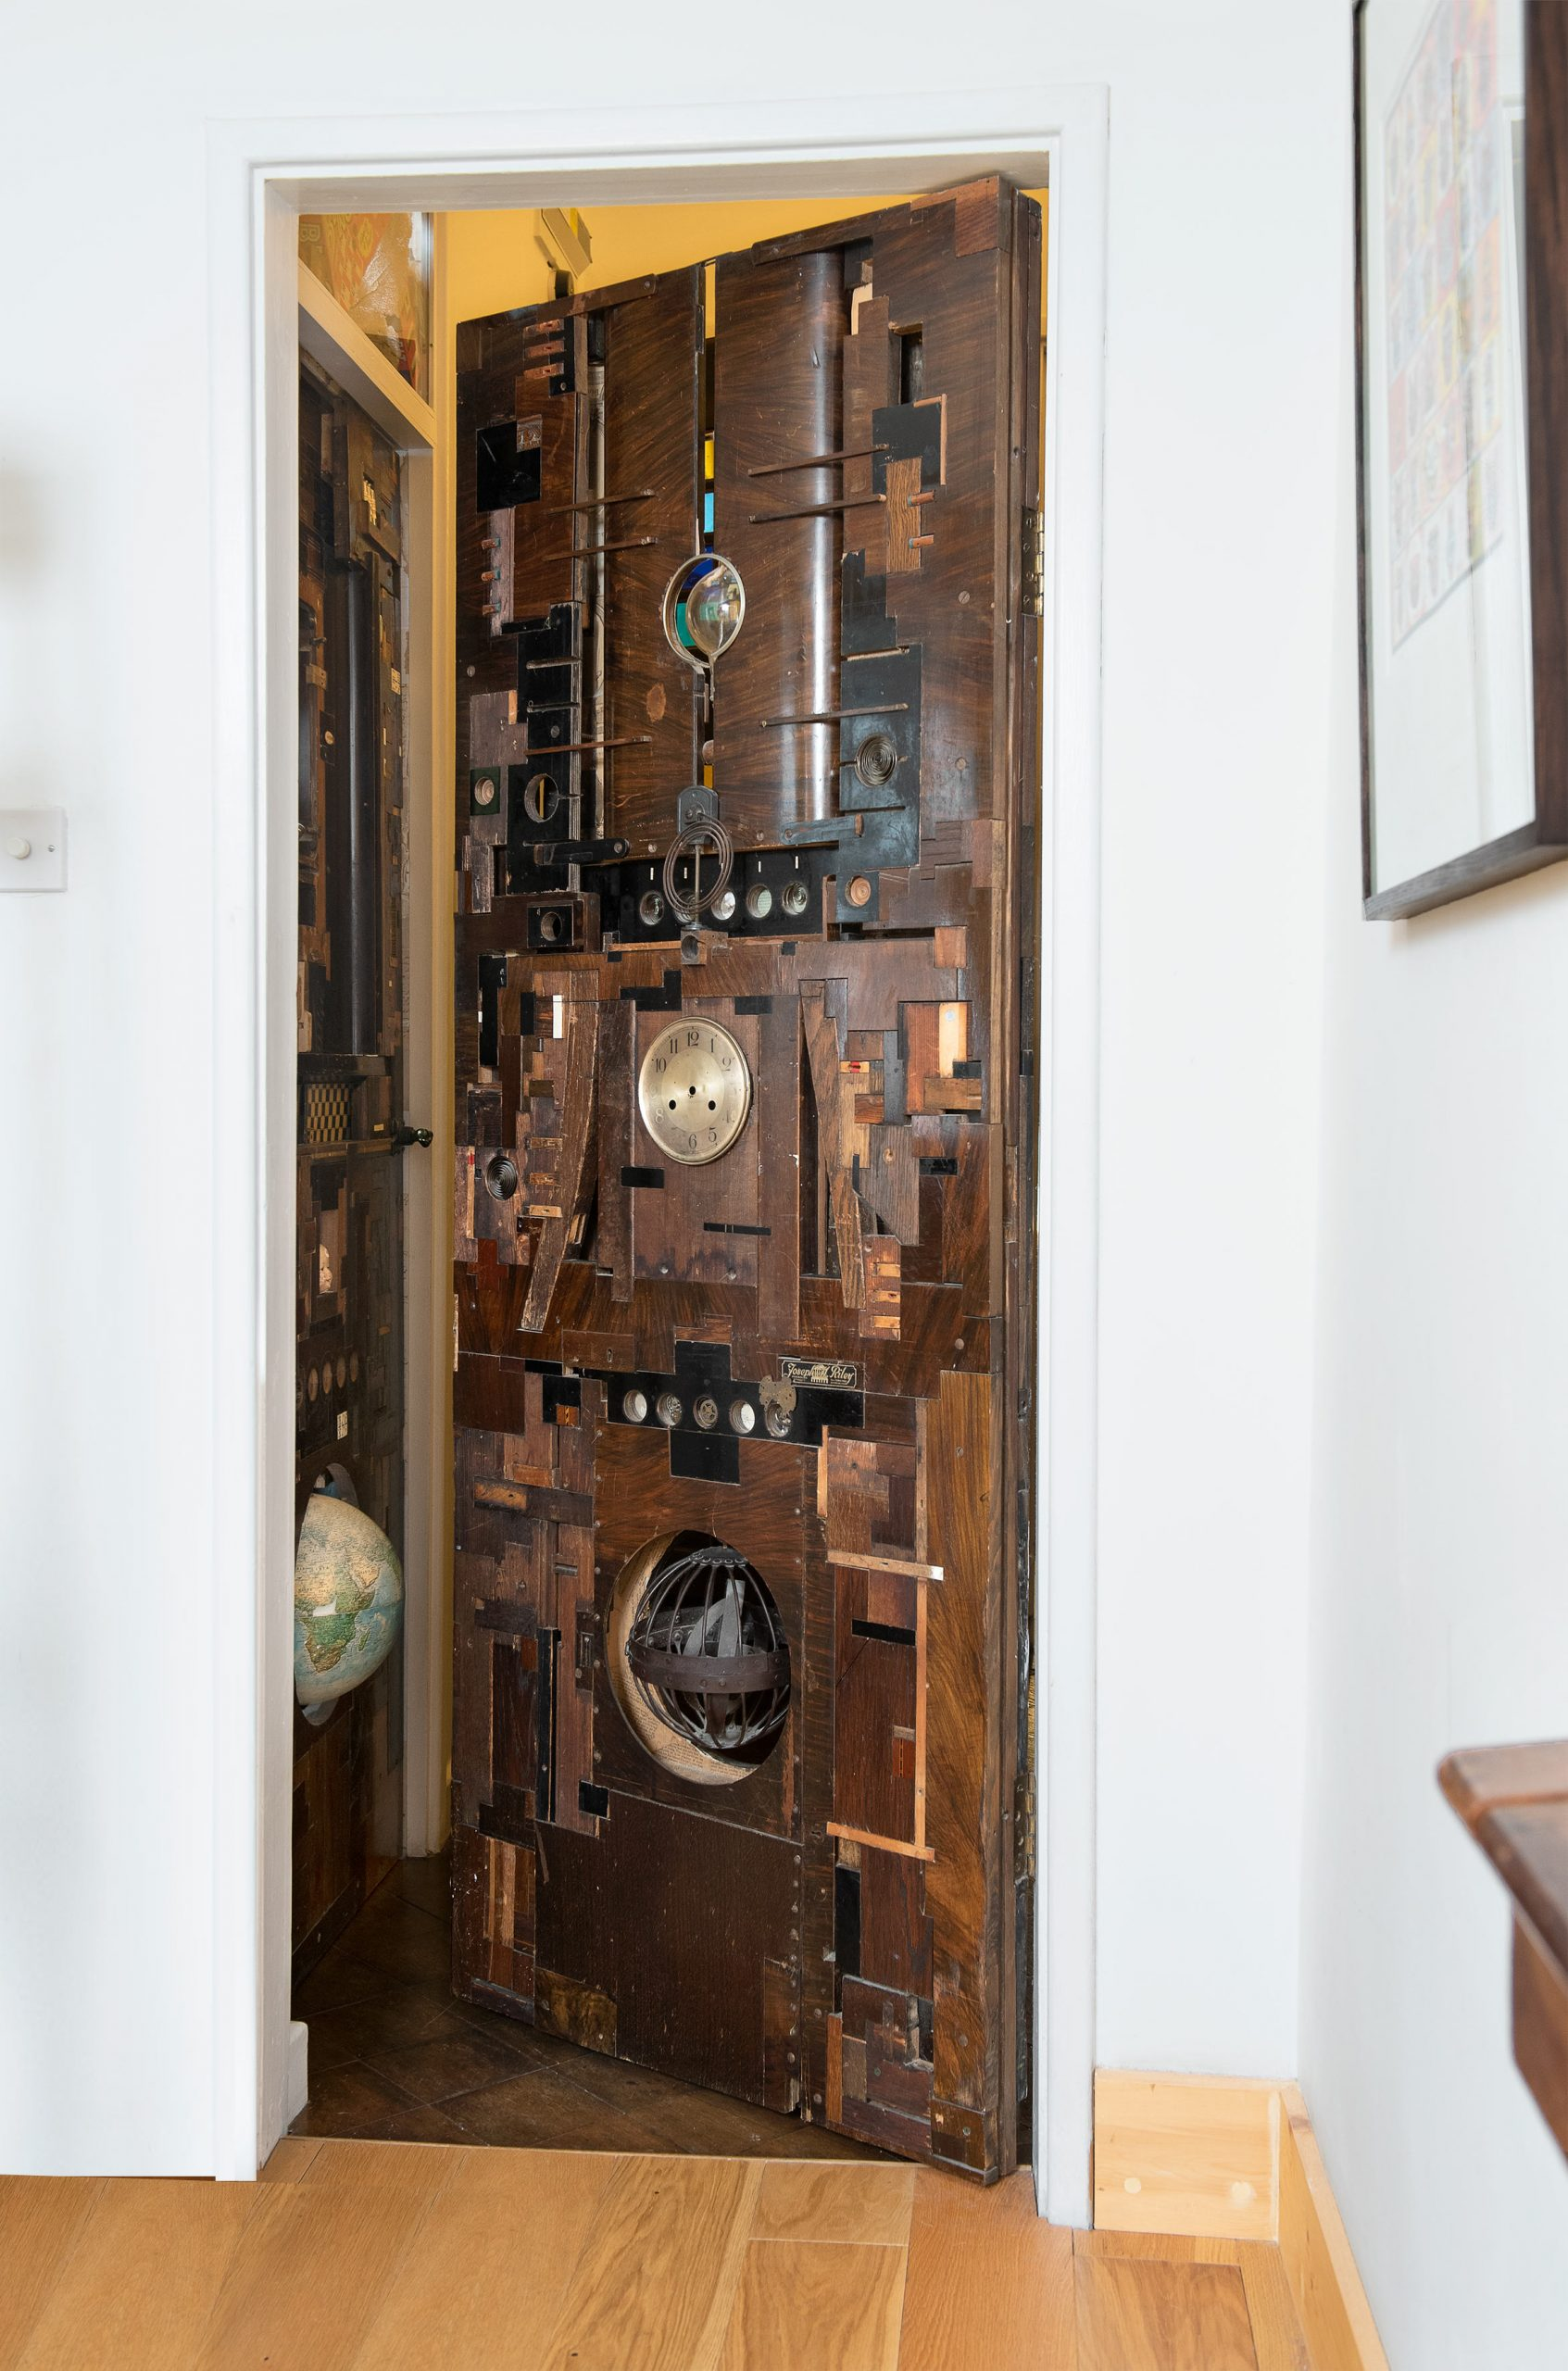 A Lesley Hilling door - Everyday objects in contemporary art